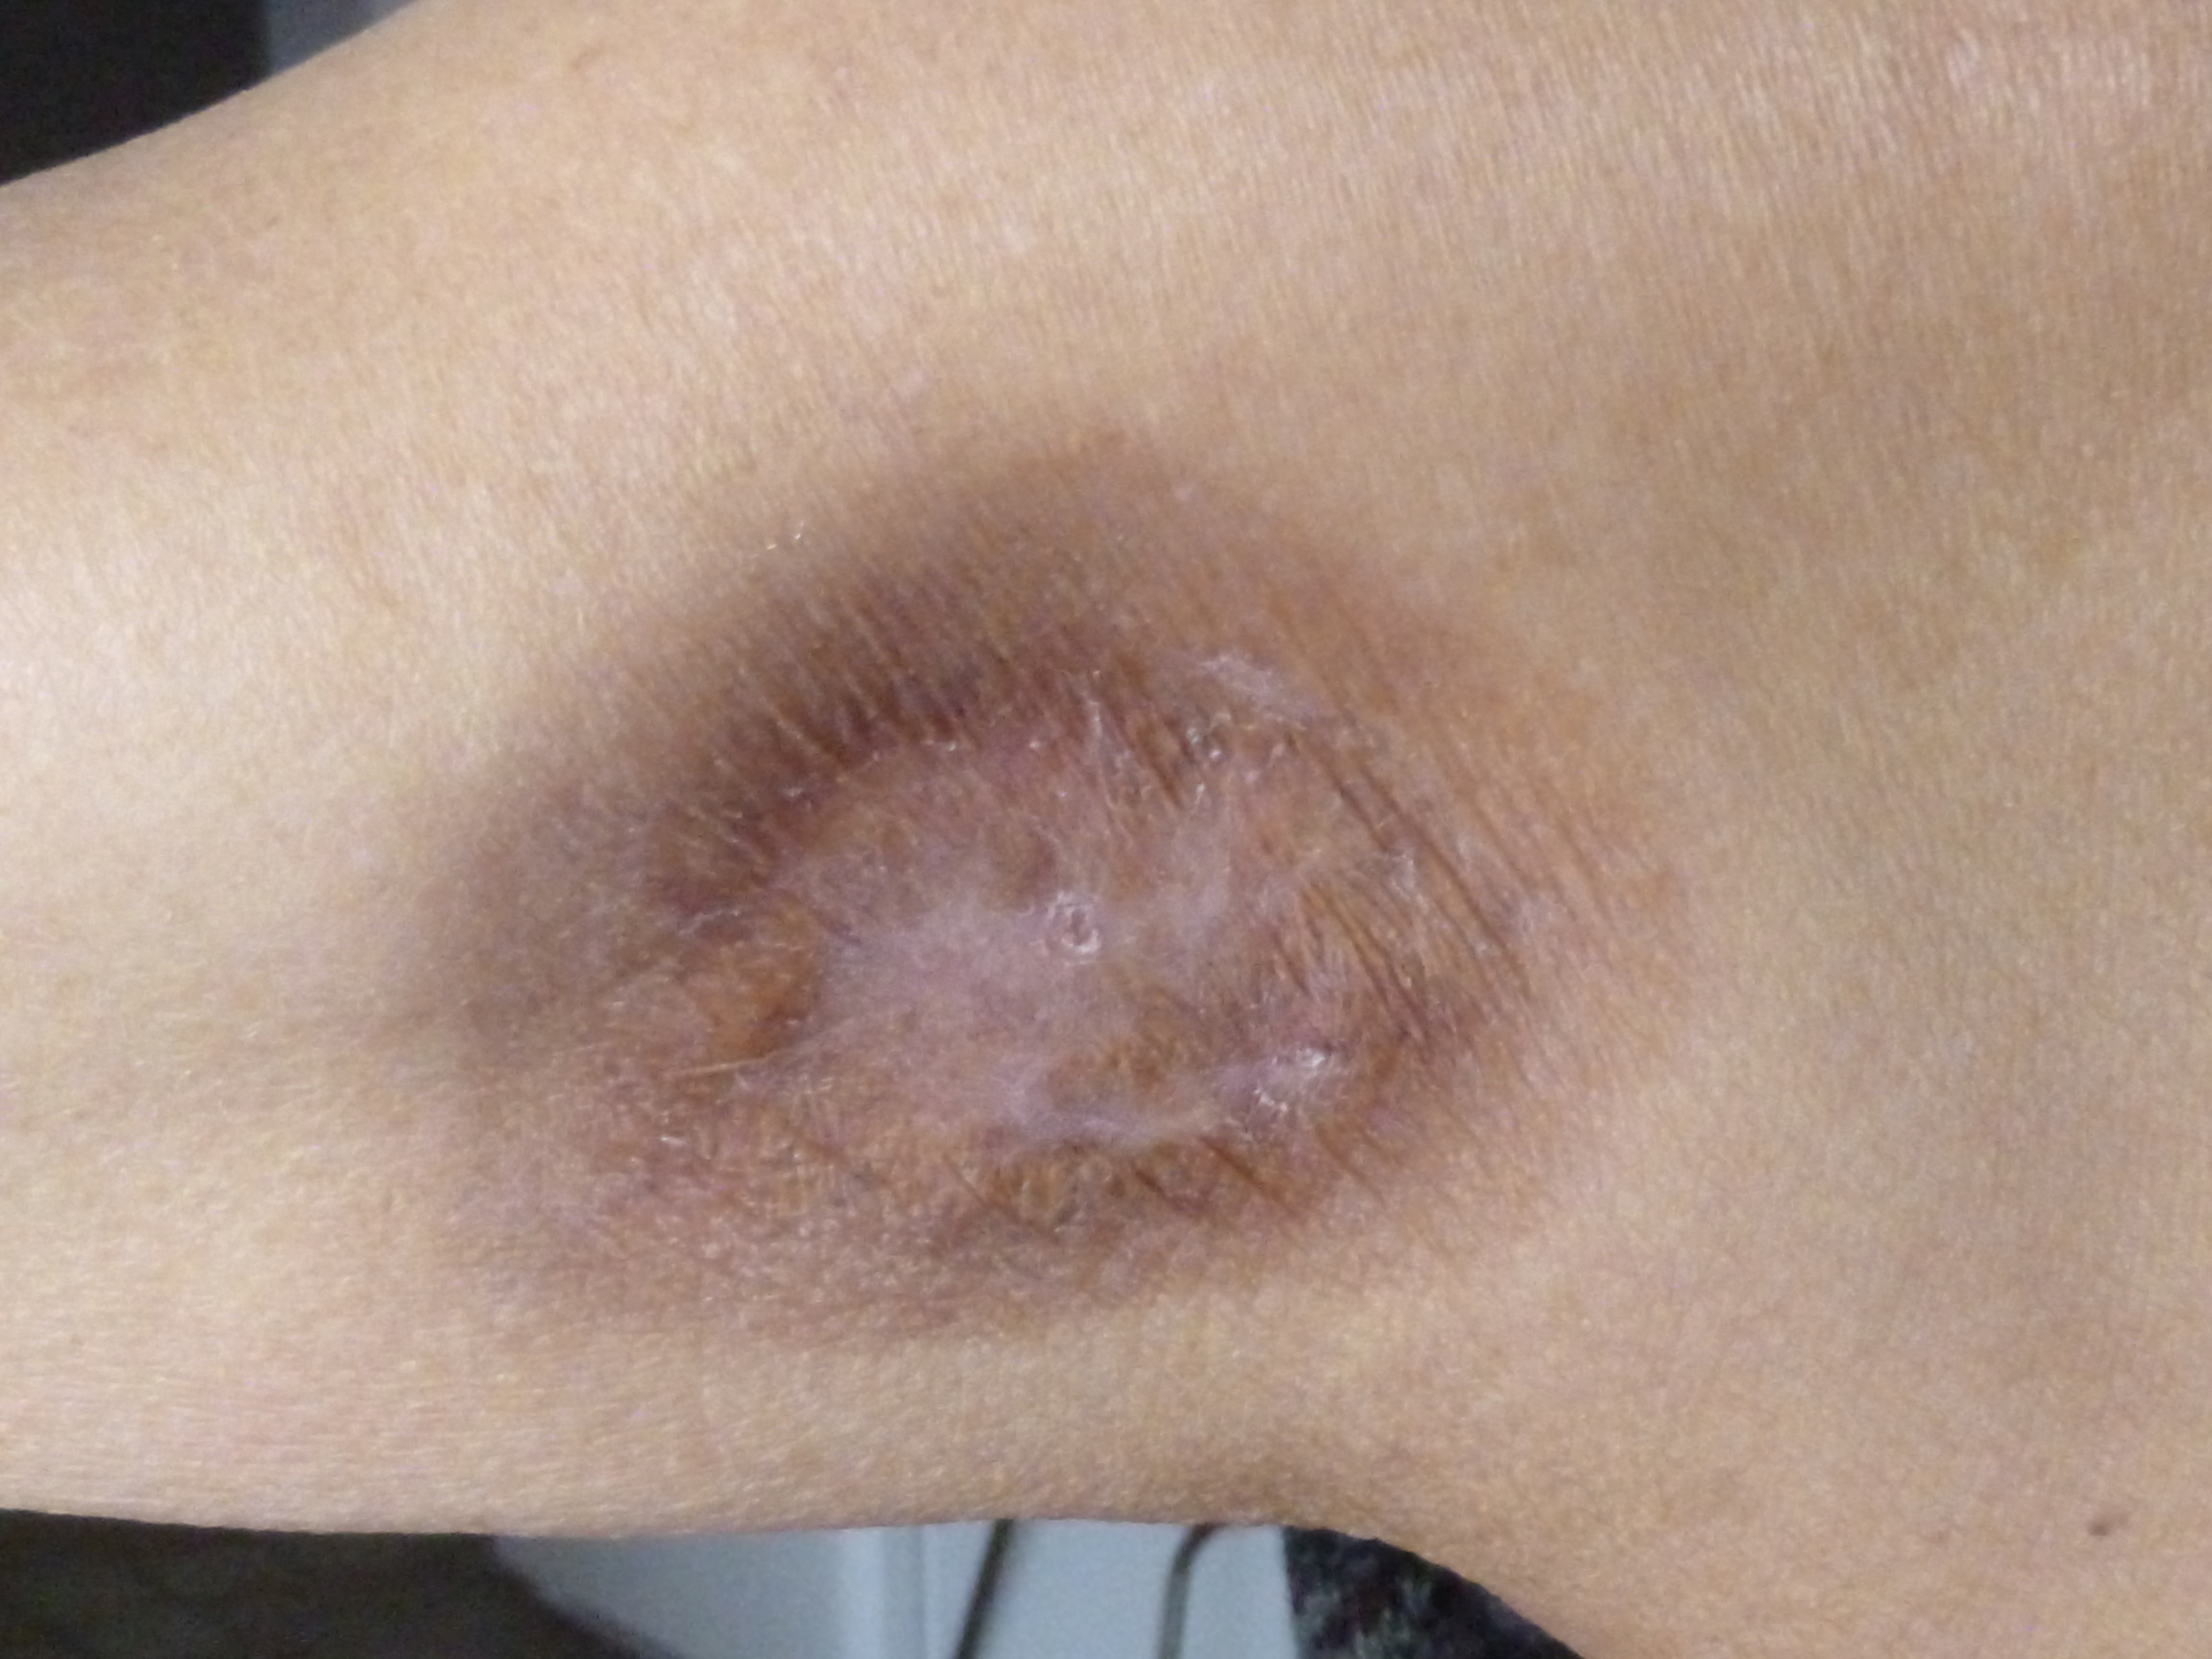 AFTER CHEMOTHERAPY   TUMOUR IS DISSOLVED - HEALING IS ALMOST COMPLETE